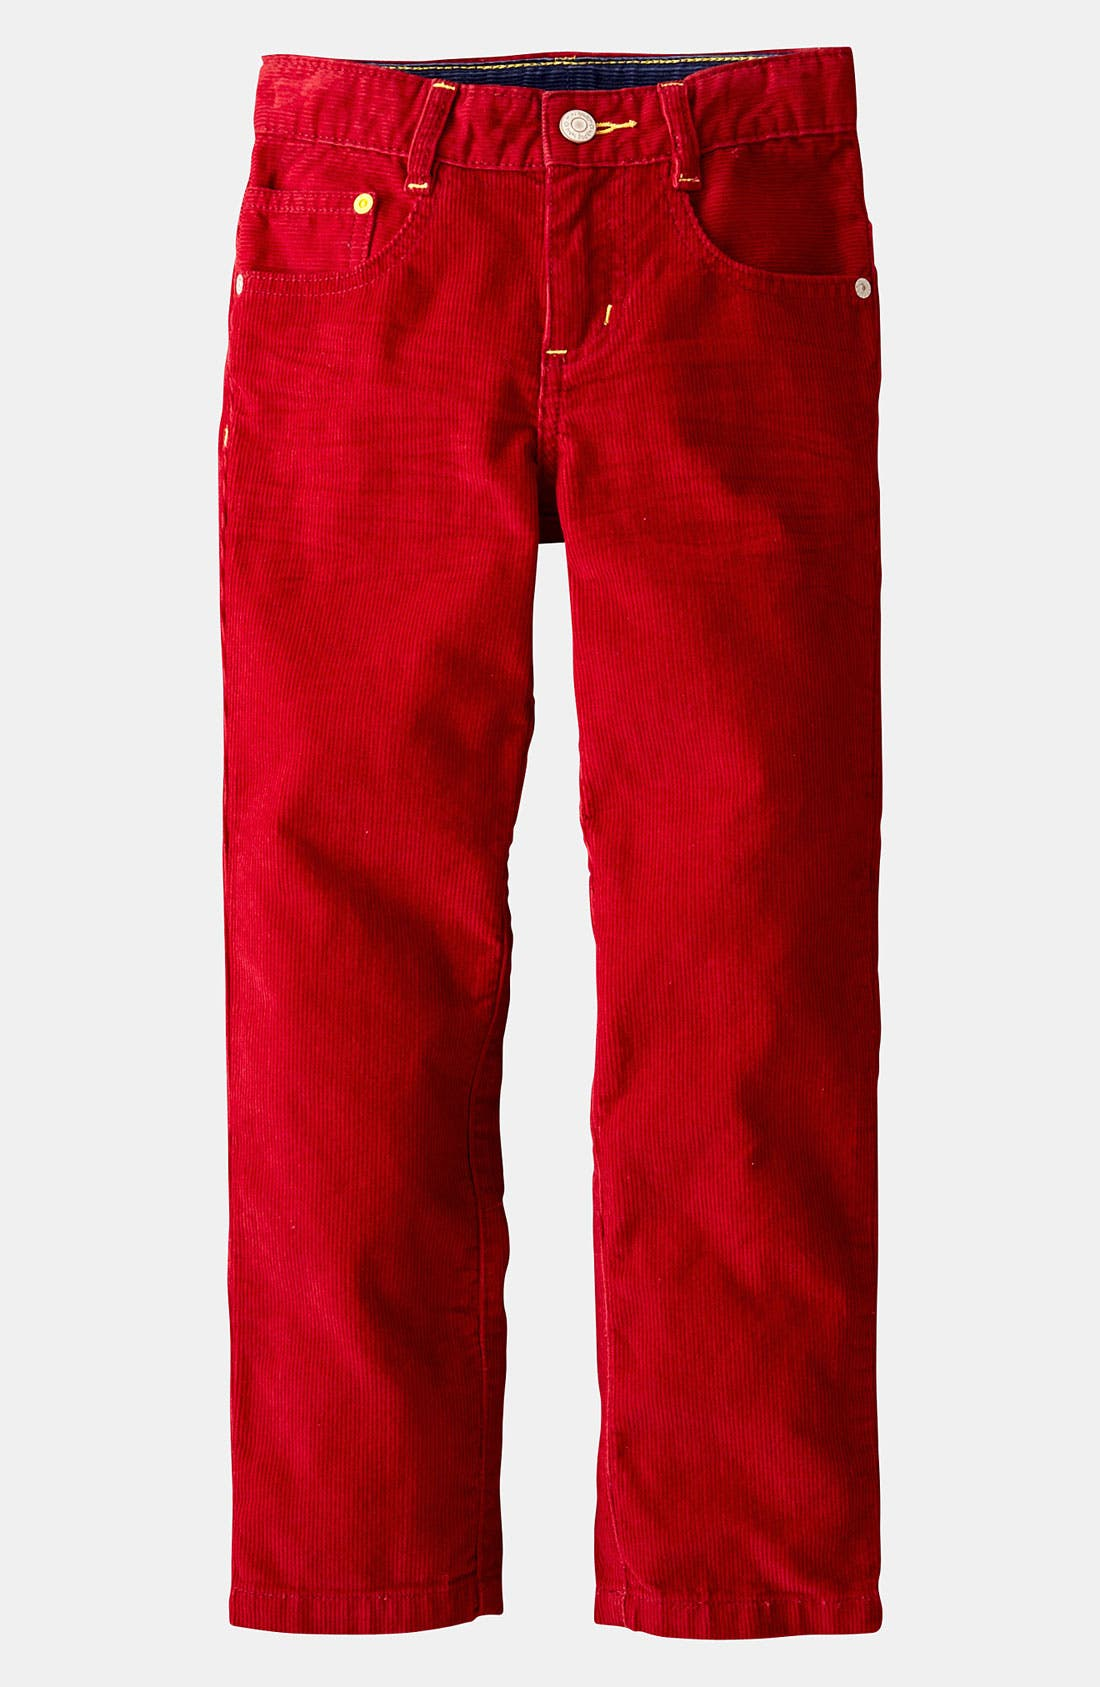 Alternate Image 1 Selected - Mini Boden 'Preppy' Slim Corduroy Pants (Toddler)